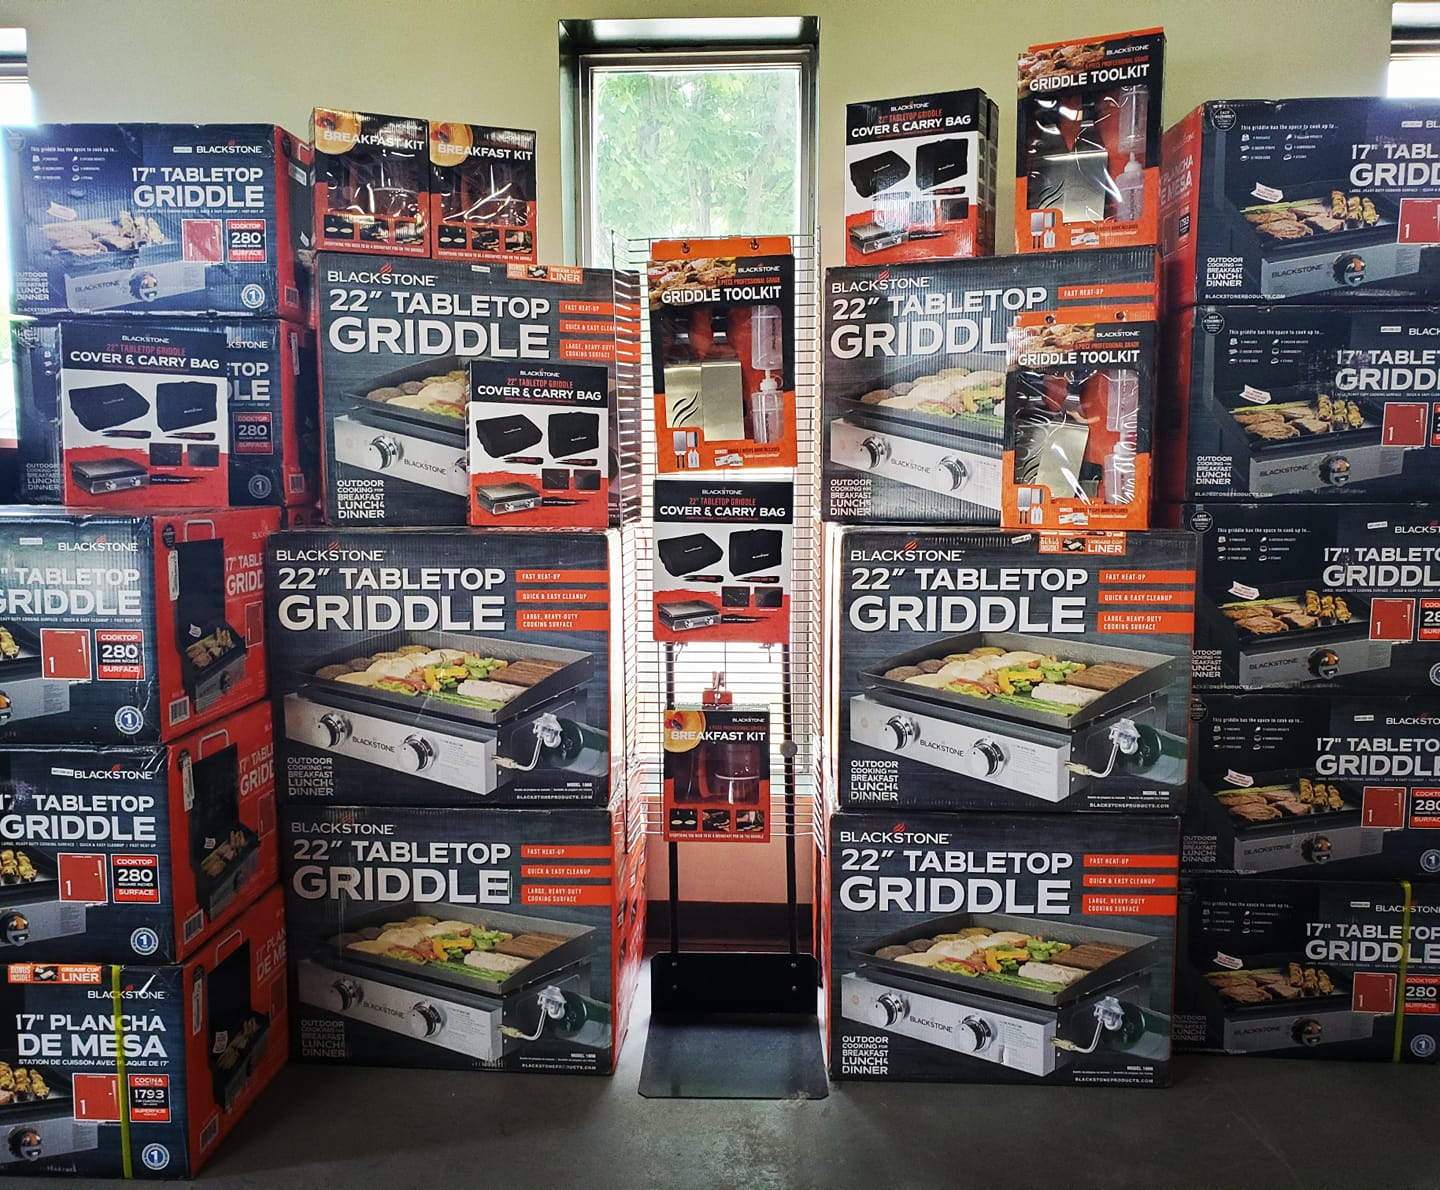 Post thumbnail for Blackstone Griddles and Accessories are IN!